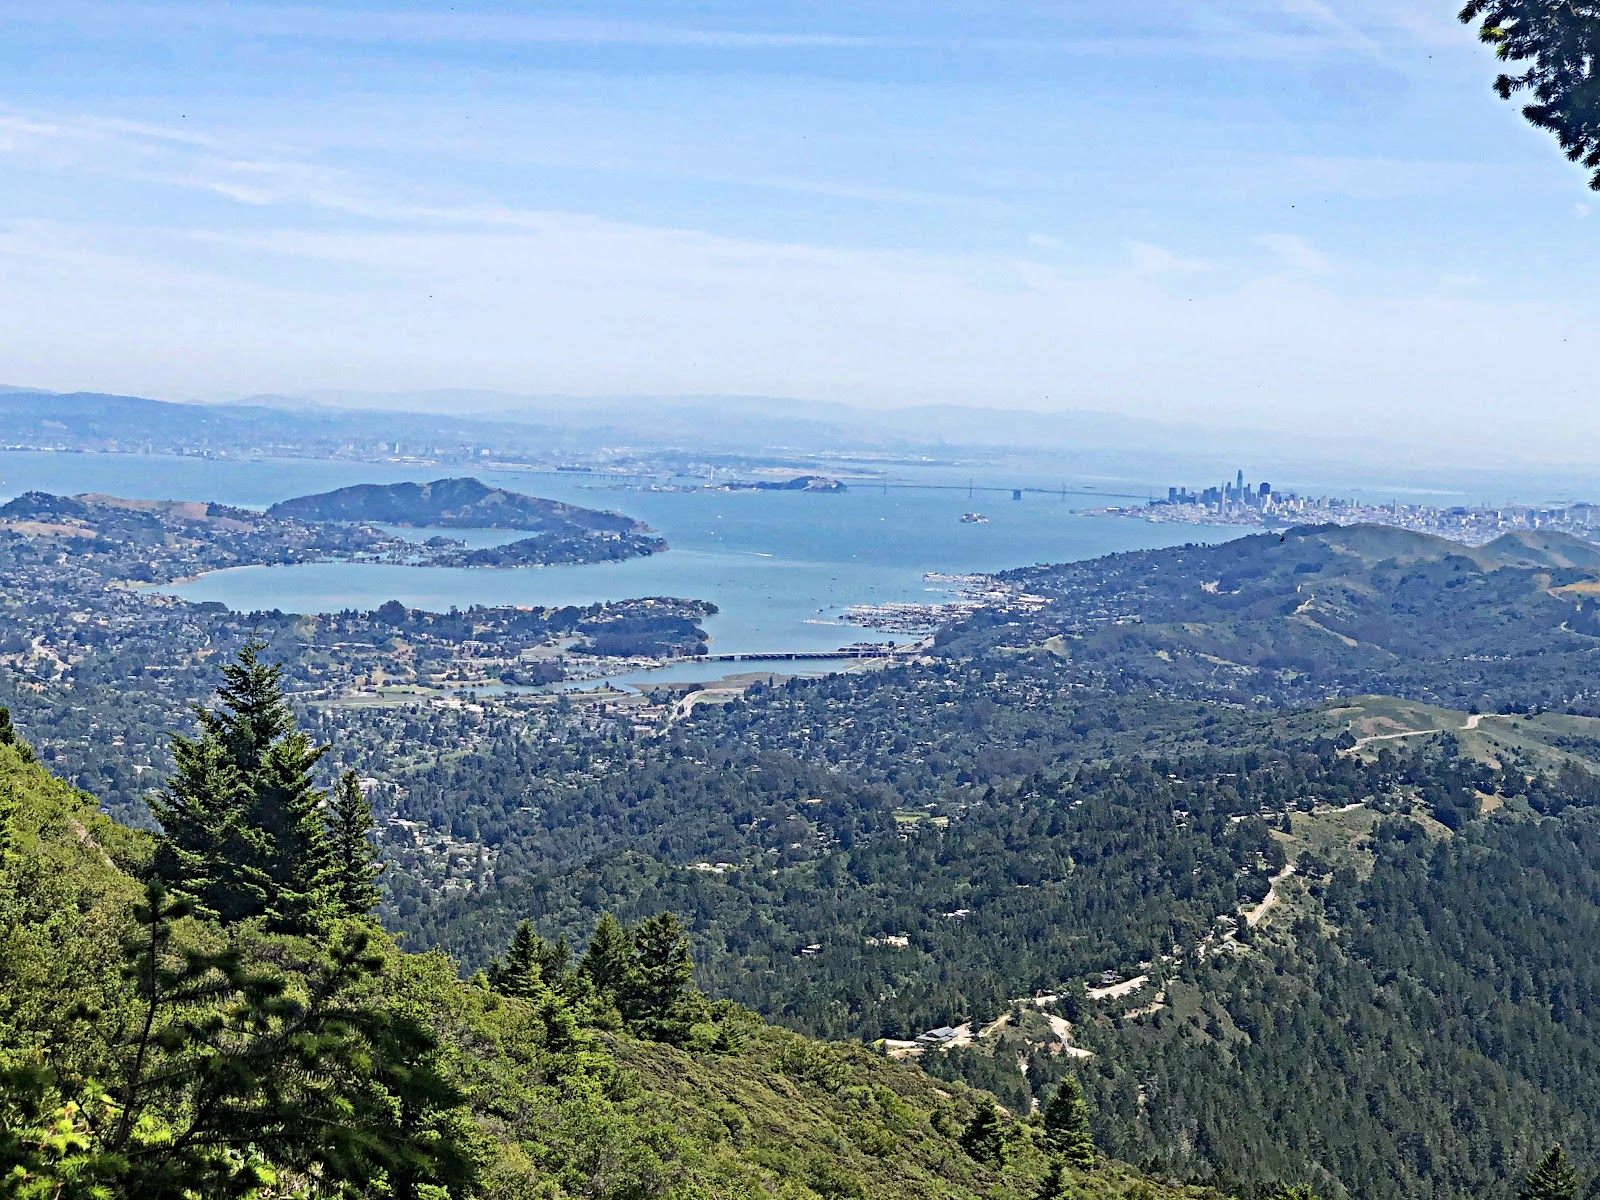 Climbing by bike Mt. Tam via Panoramic Hwy North - view from West Peak of San Francisco